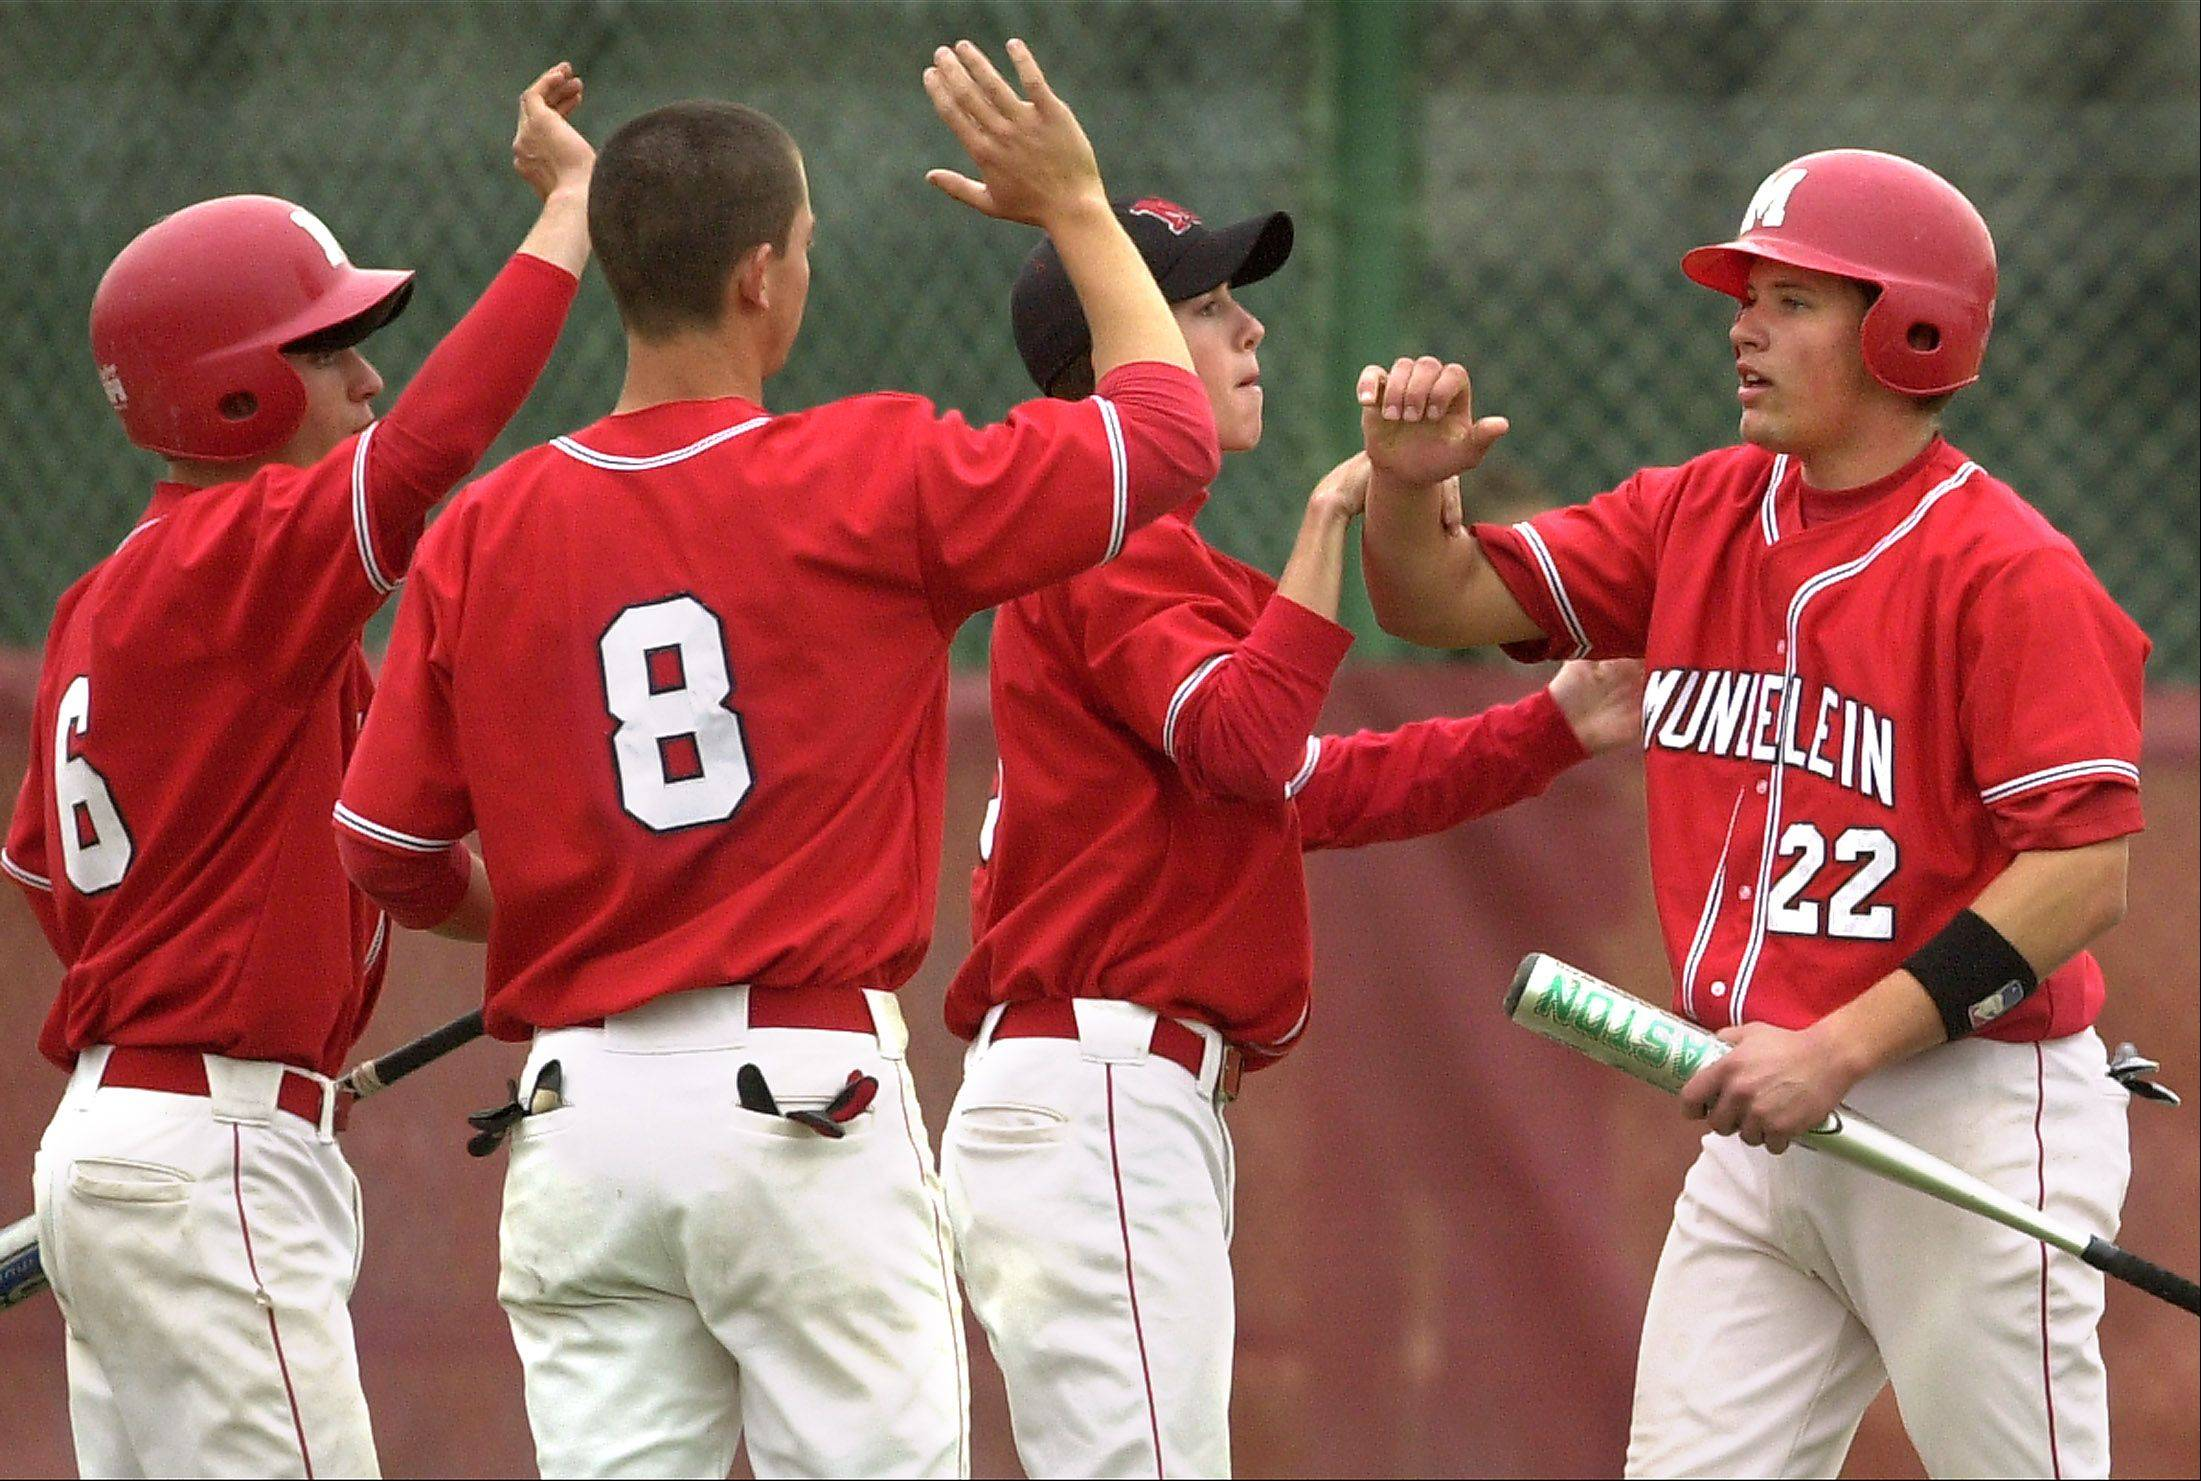 PAUL VALADE/Daily Herald File Photo The booster club for the Mundelein High School baseball team is among those that could be consolidated into one group.